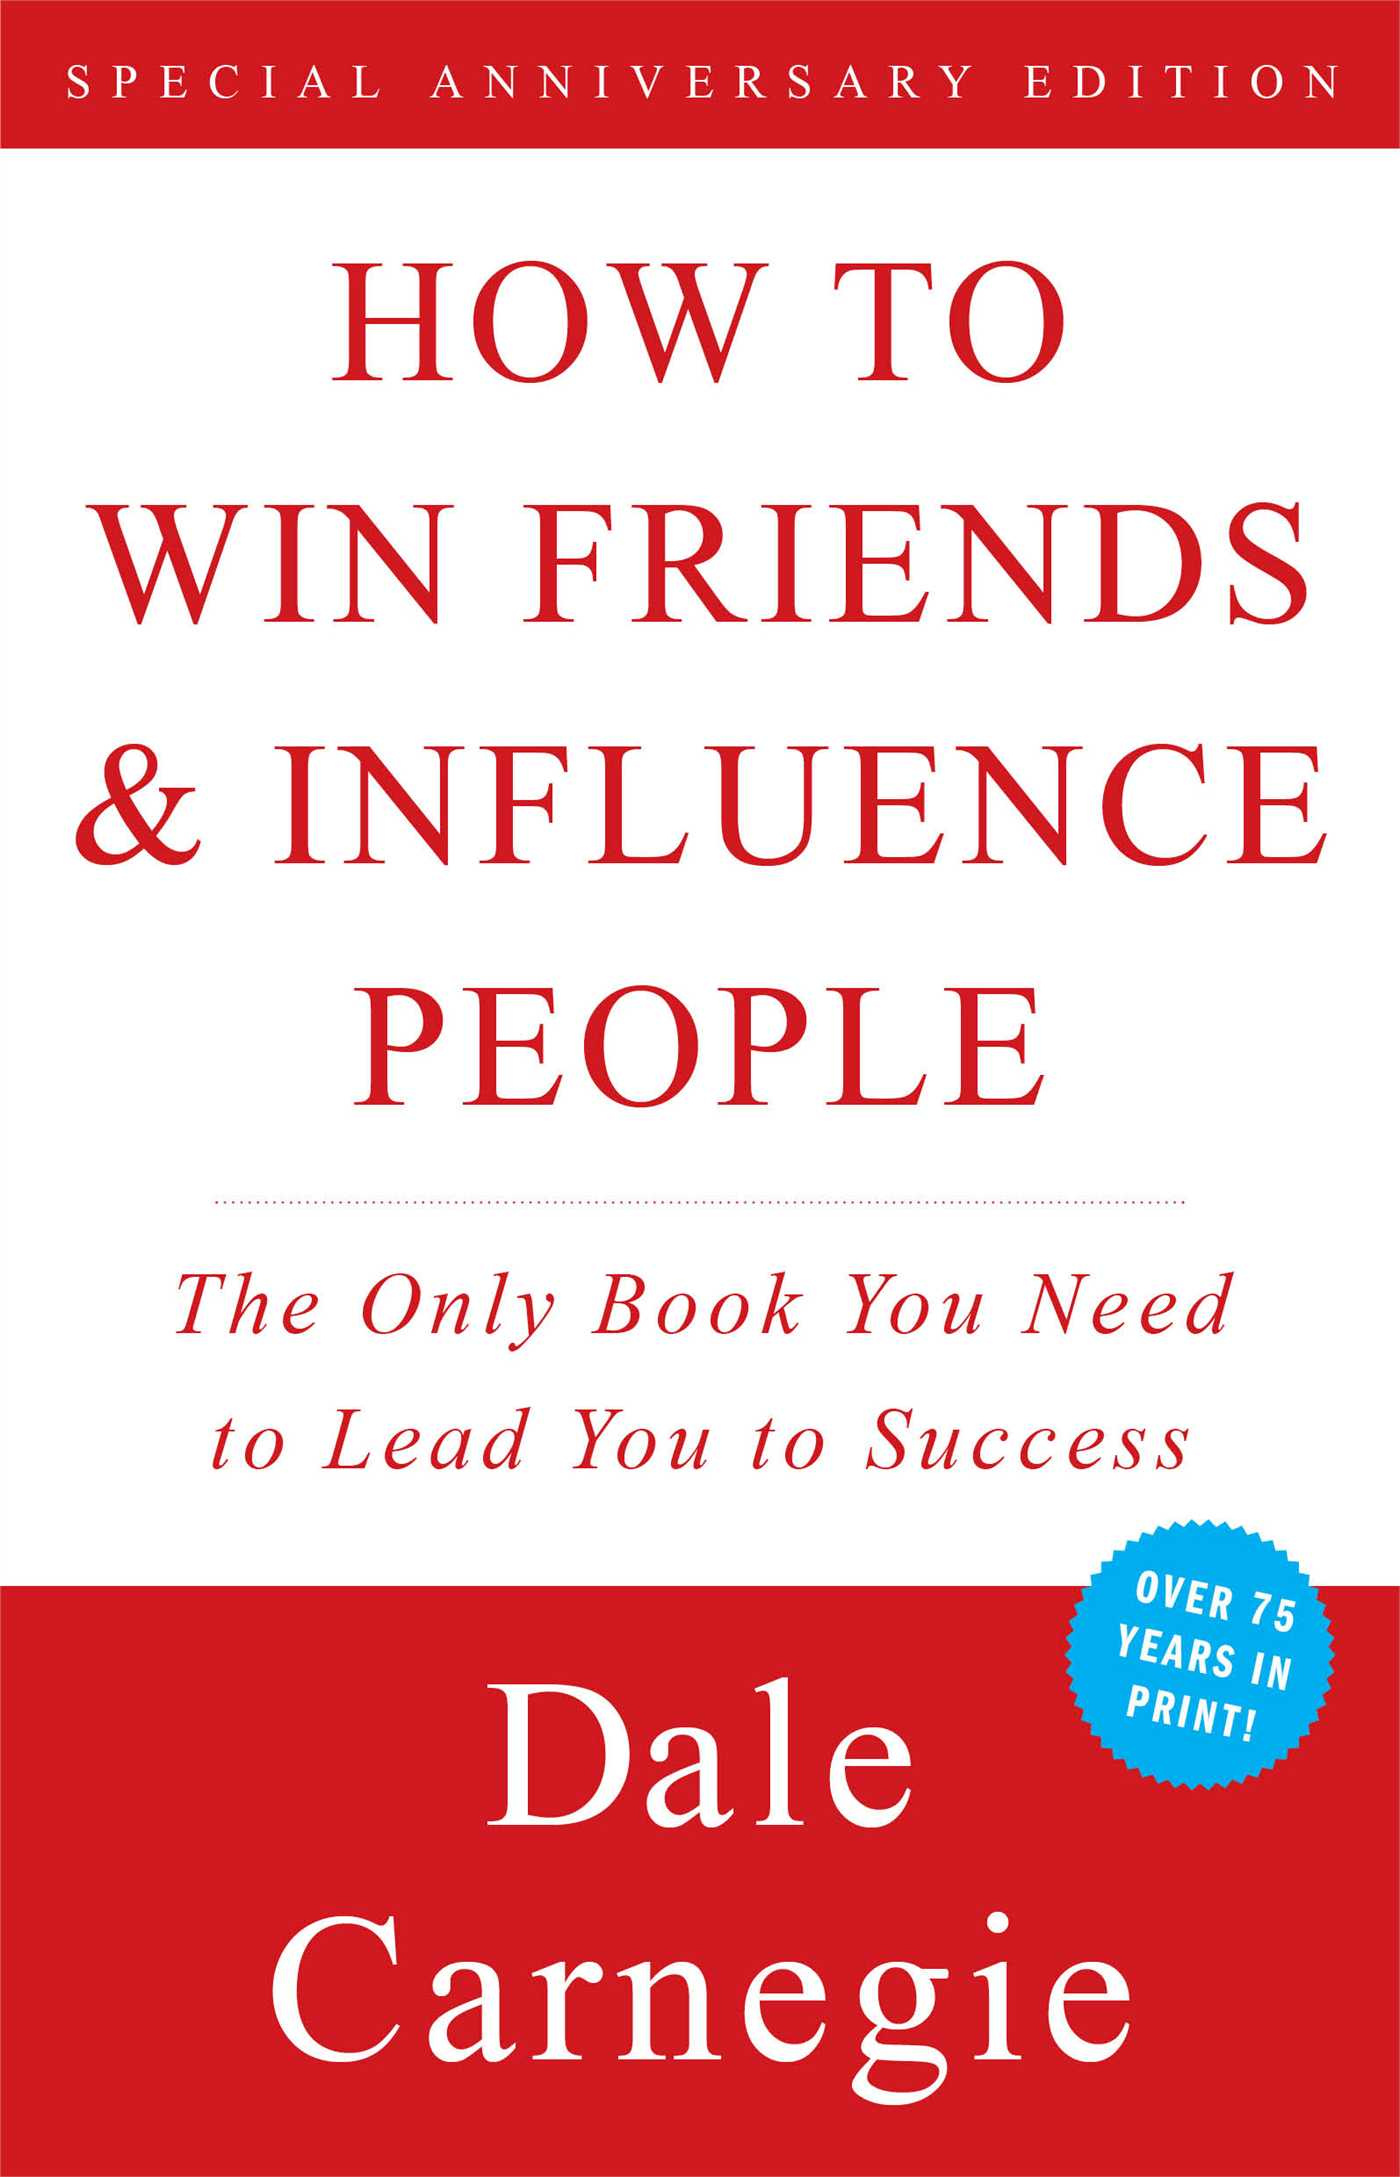 How To Win Friends and Influence People by Dale Carnegie, ISBN: 9781451621716